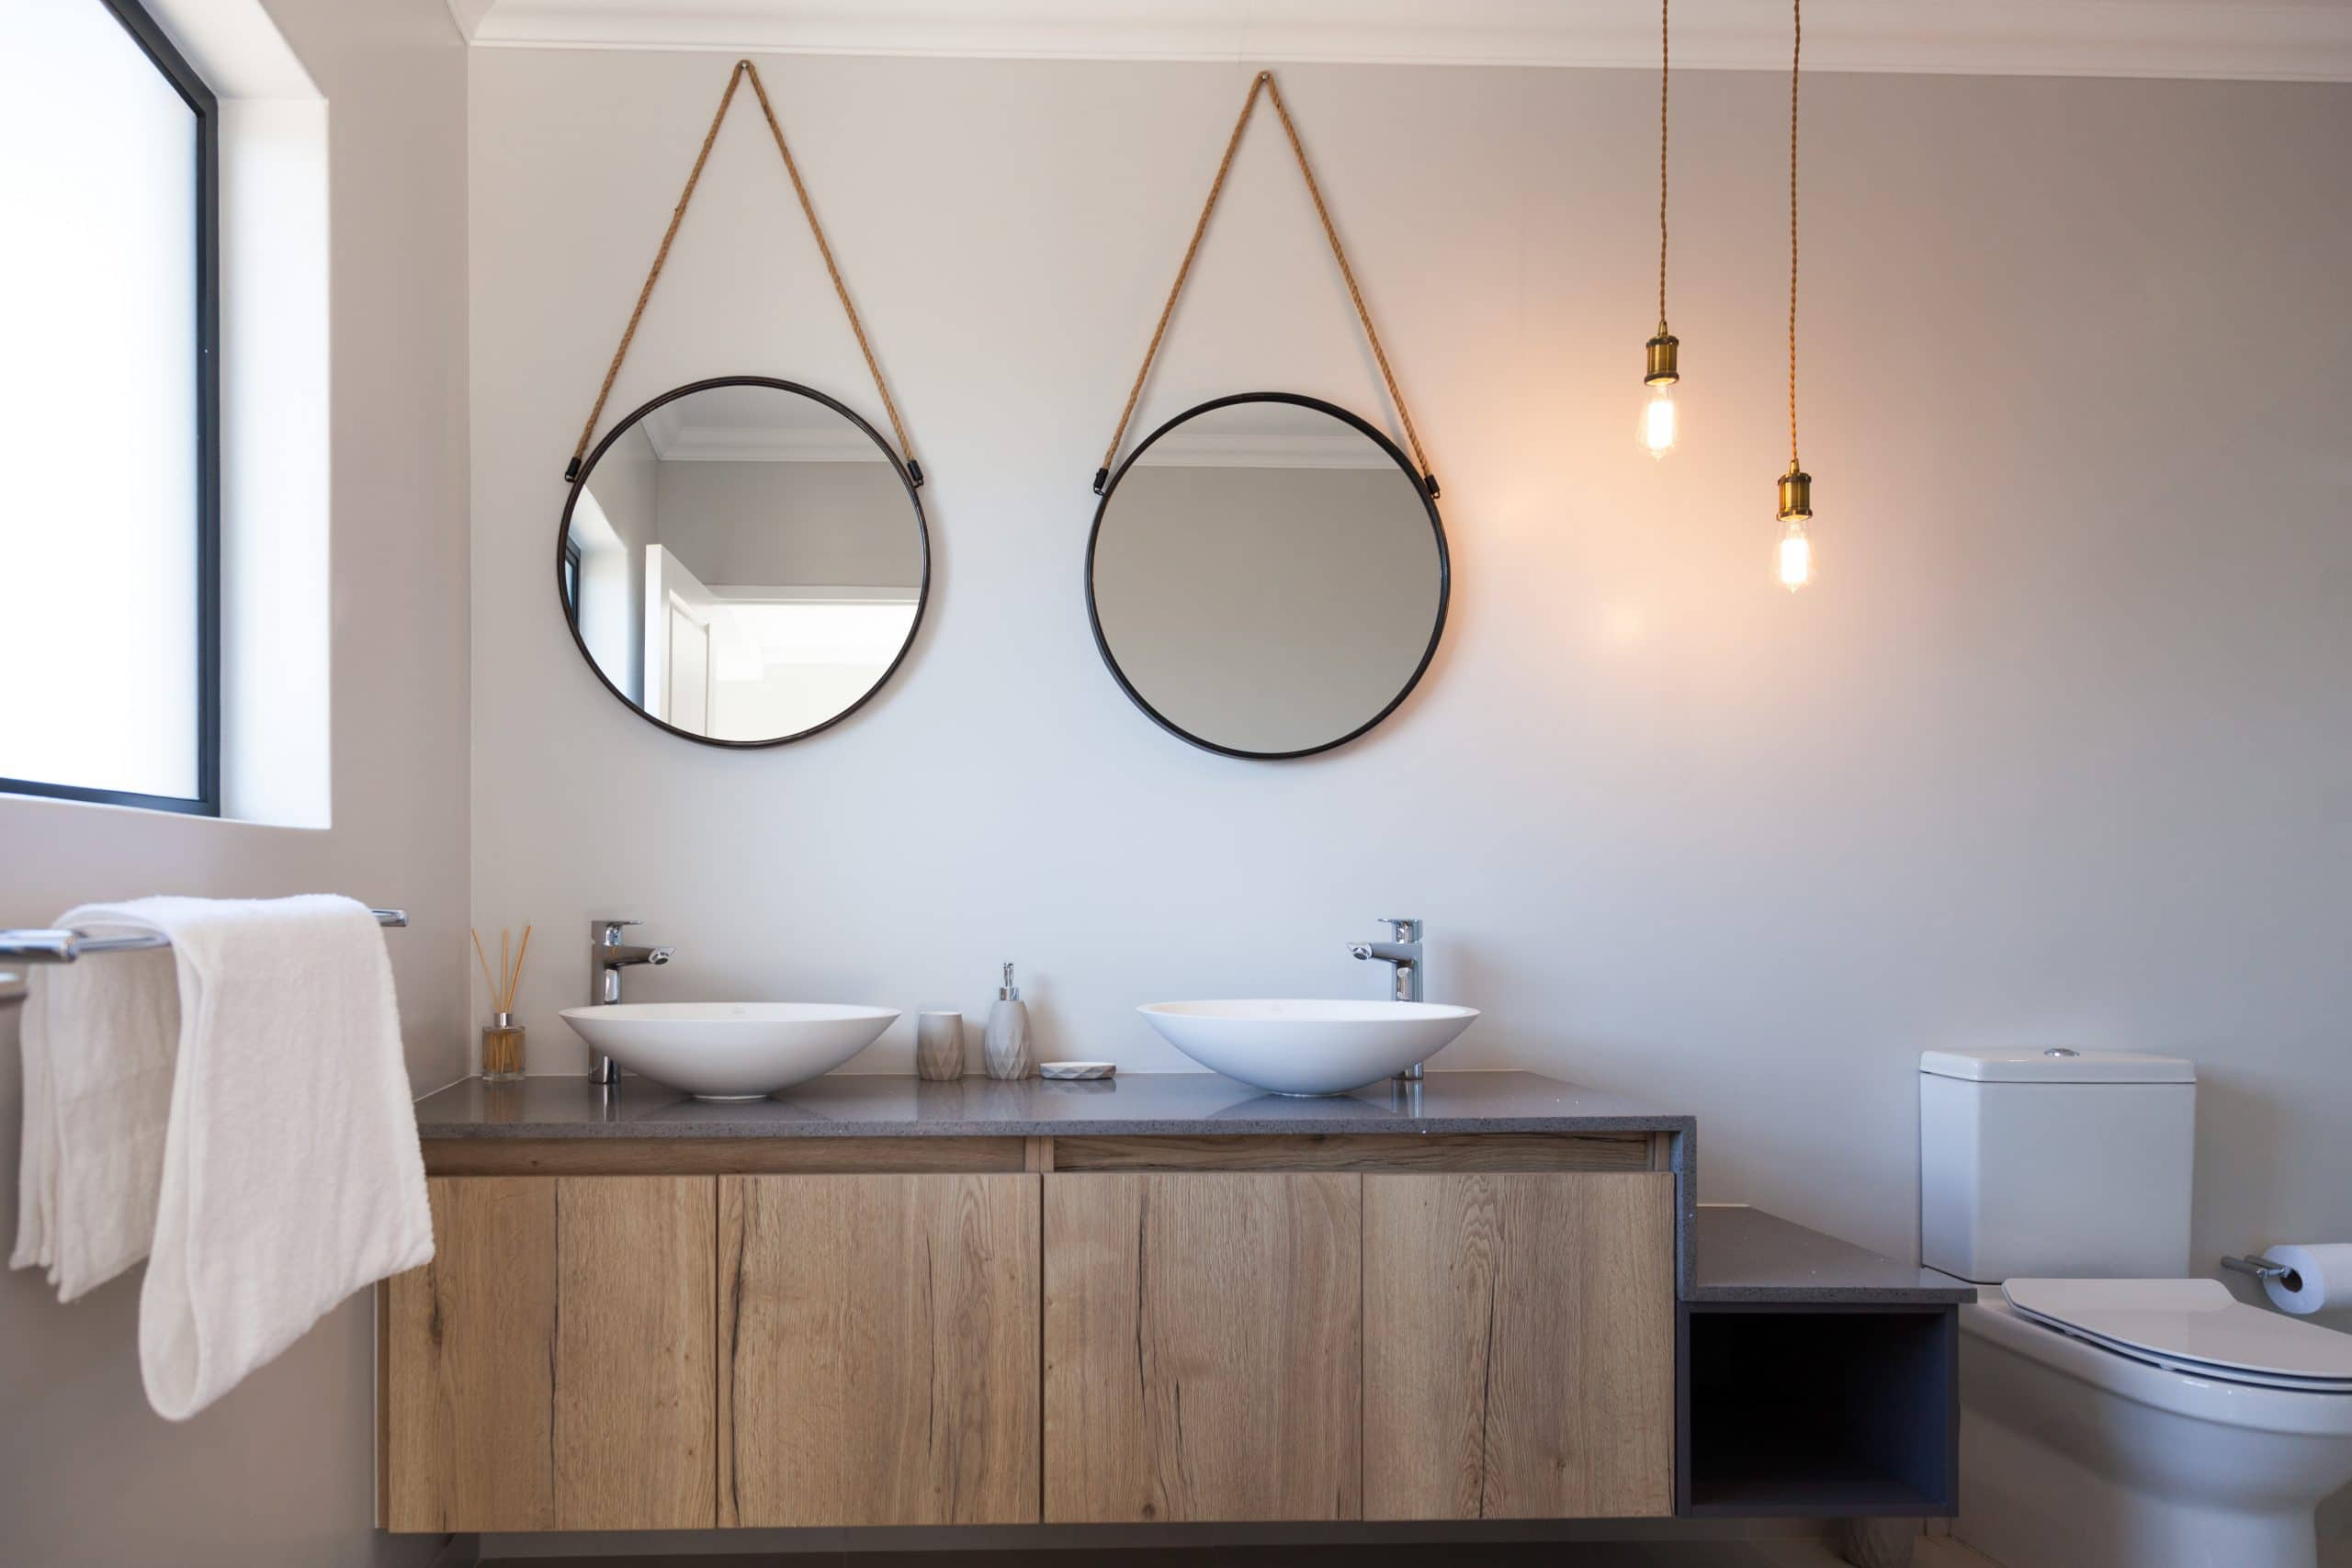 round coricraft hanging mirrors over bathroom vanity with grey quartz tops